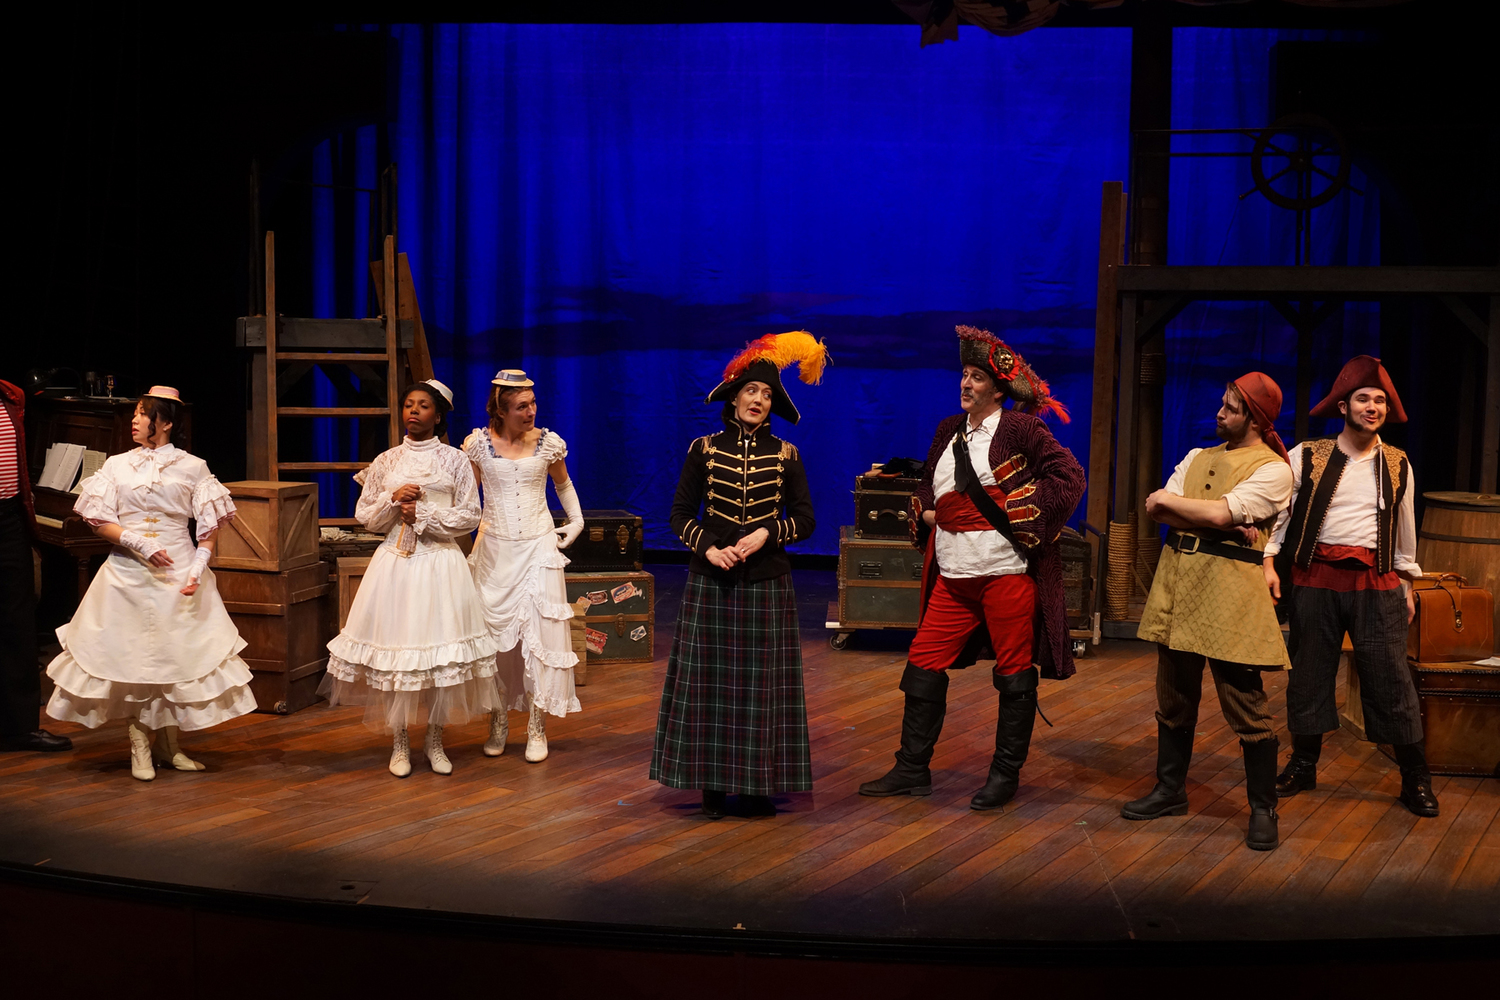 BWW Review: Faithful and Funny Updated PIRATES OF PENZANCE at Park Square Theatre